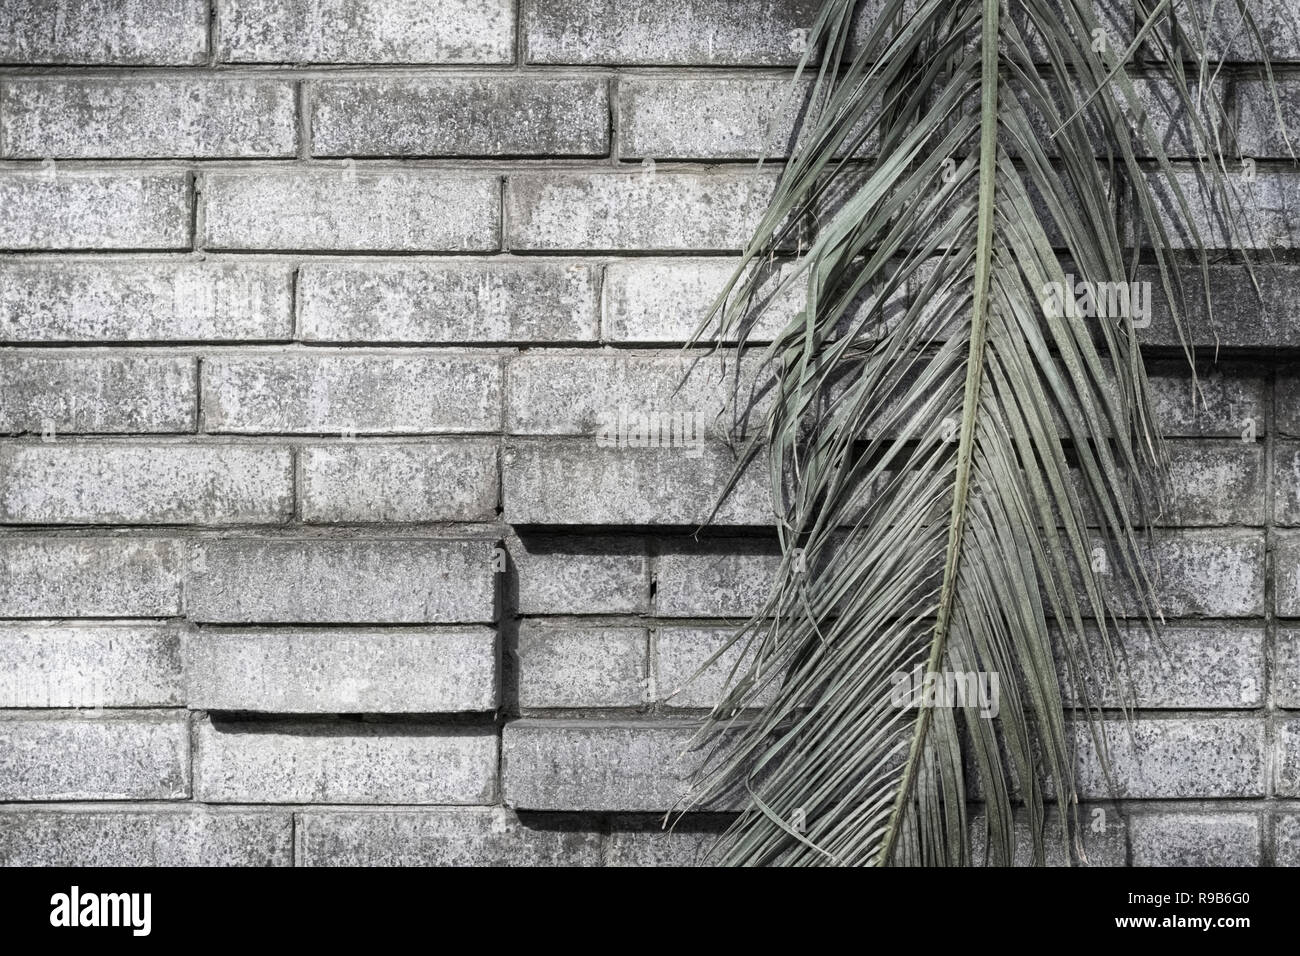 Green leaf of a palm tree on a gray brick wall background with ledges a dark grunge background - Stock Image